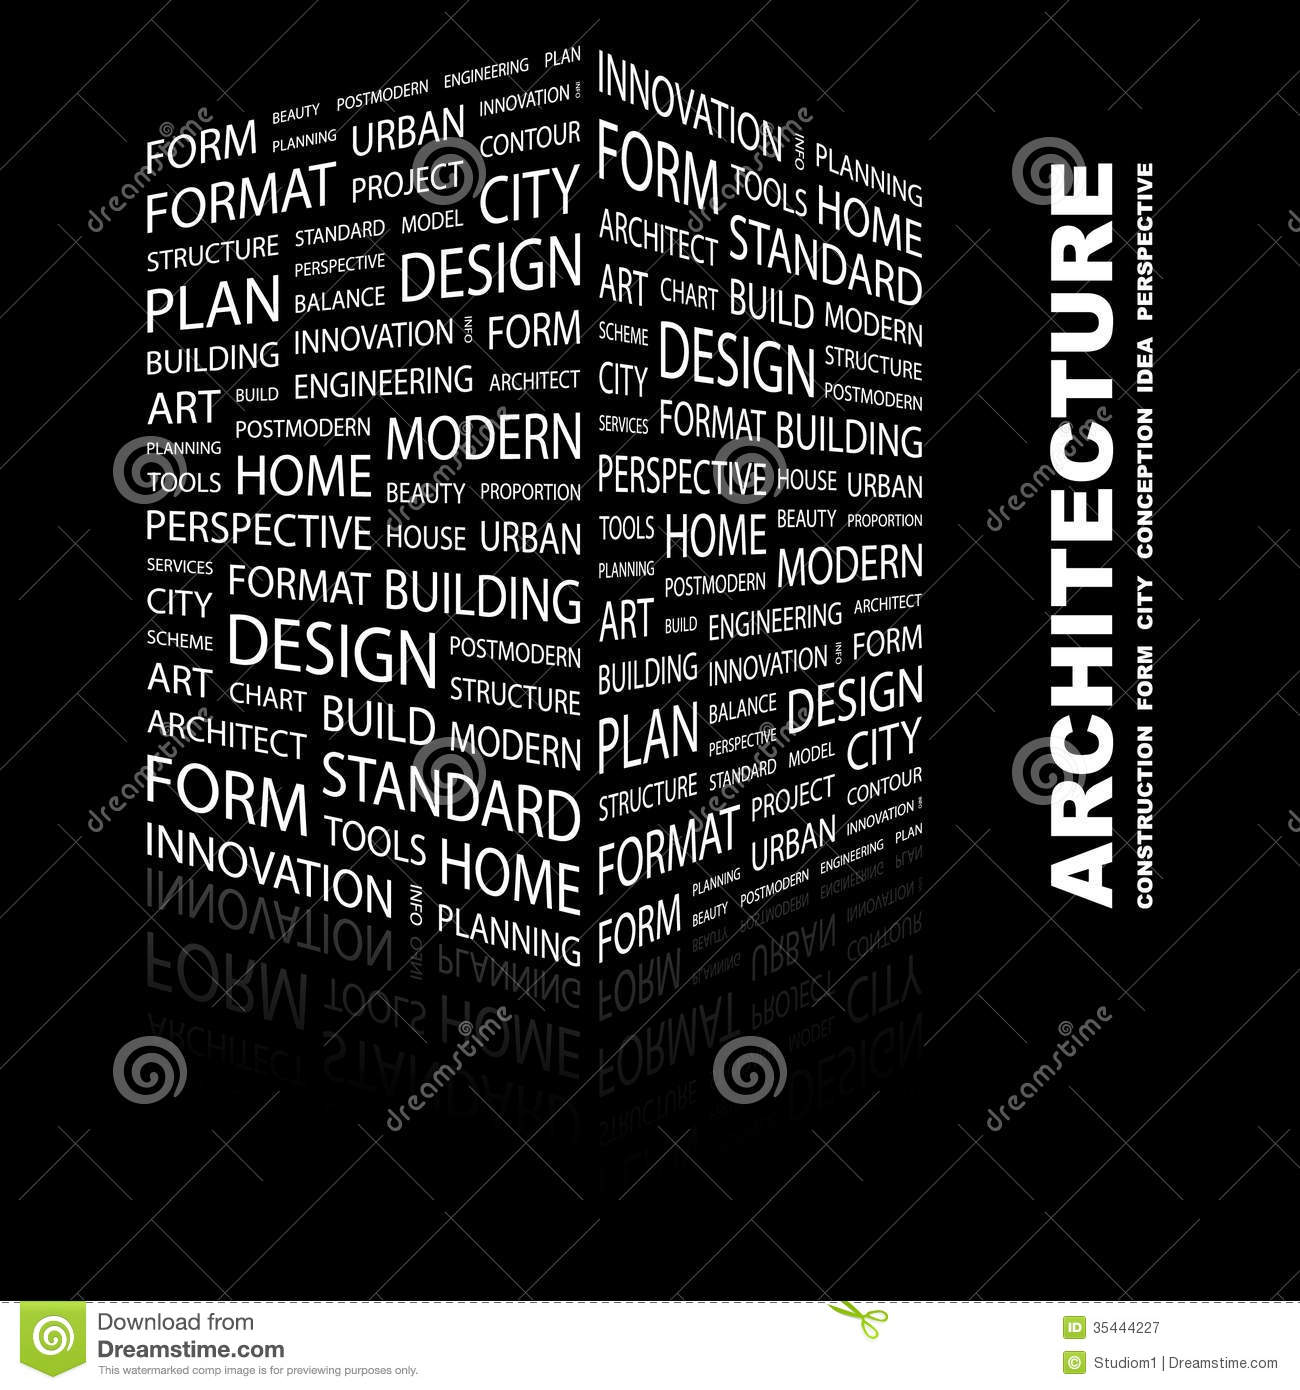 B6ade1928278c977 Architecture Residential Modern Villa Modern Italian Architecture furthermore Royalty Free Stock Photography Architecture Concept Illustration Graphic Tag Collection Wordcloud Collage Image35444227 furthermore House In Mykonos By Bc Estudio Architects in addition Stock Images Palace Hallway Image20955554 moreover idea Art. on modern design house dubai